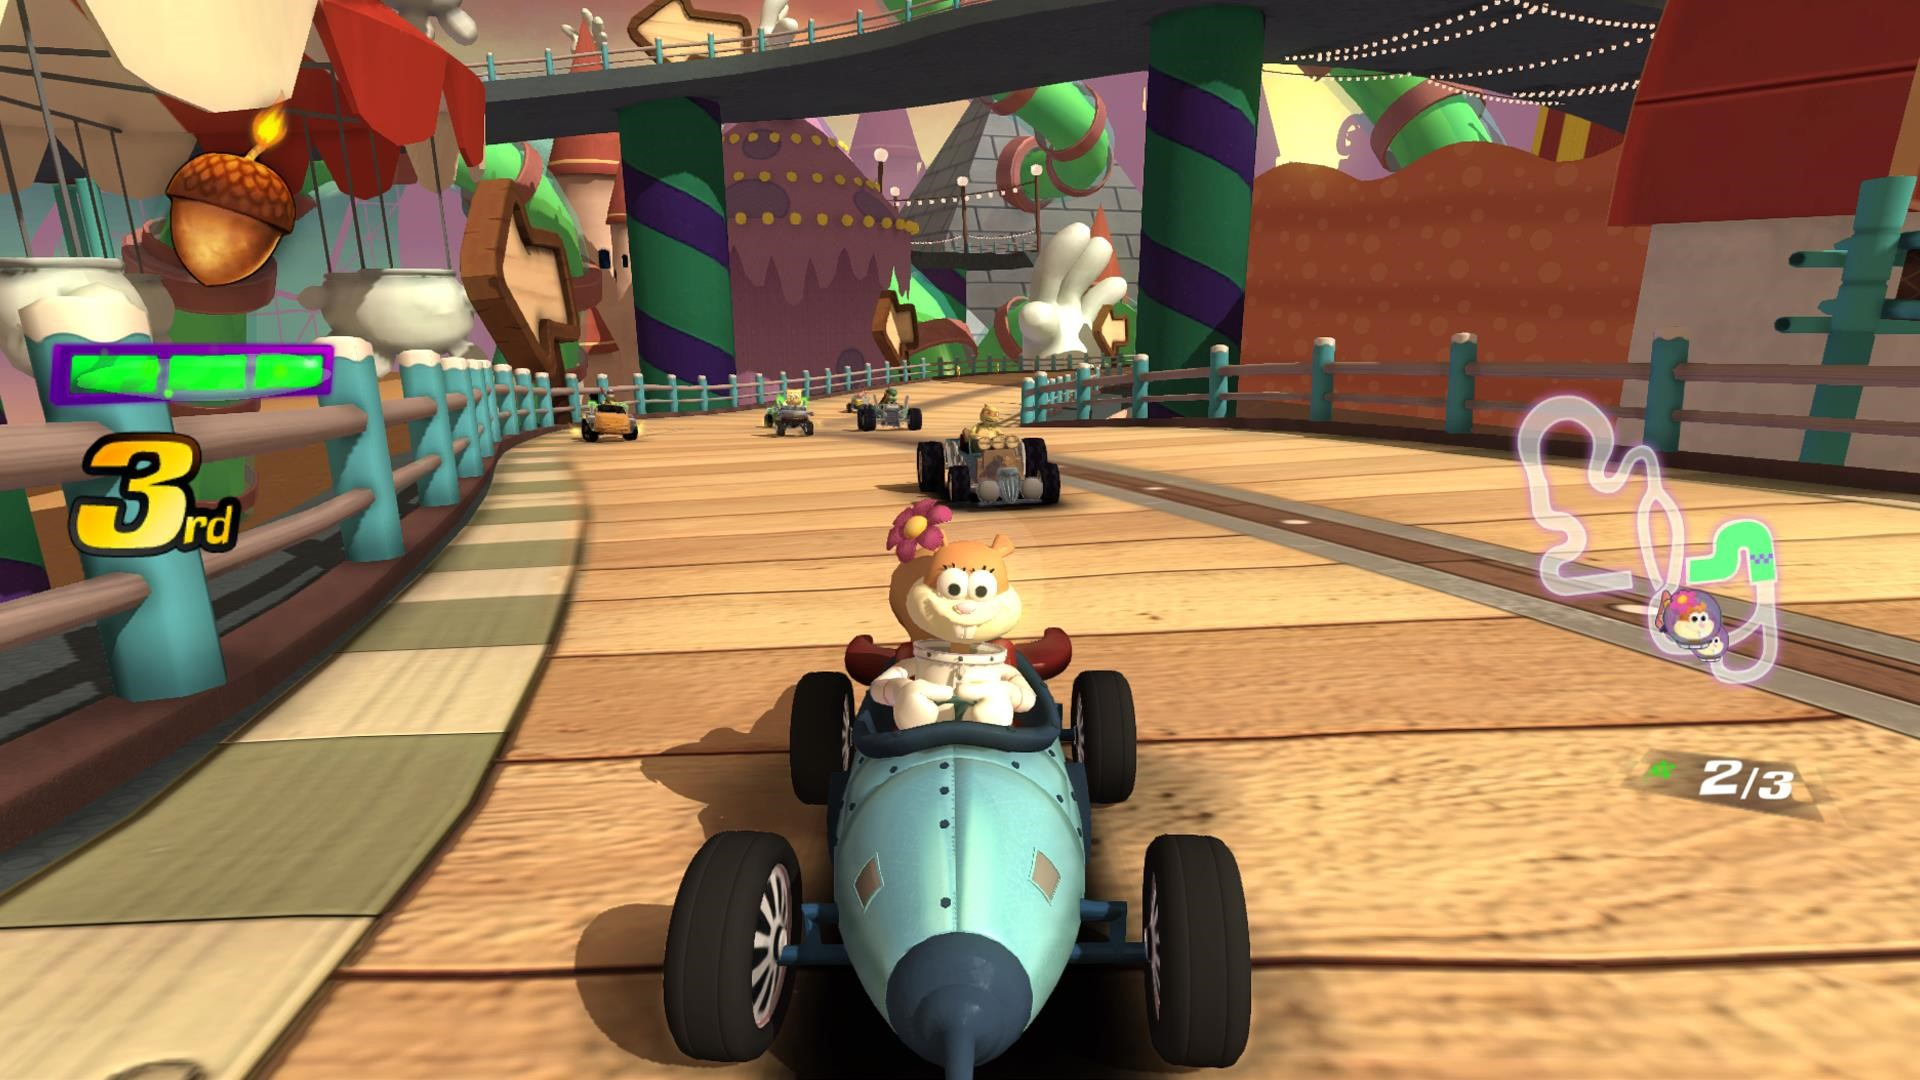 Nickelodeon Kart Racers officially announced - first details